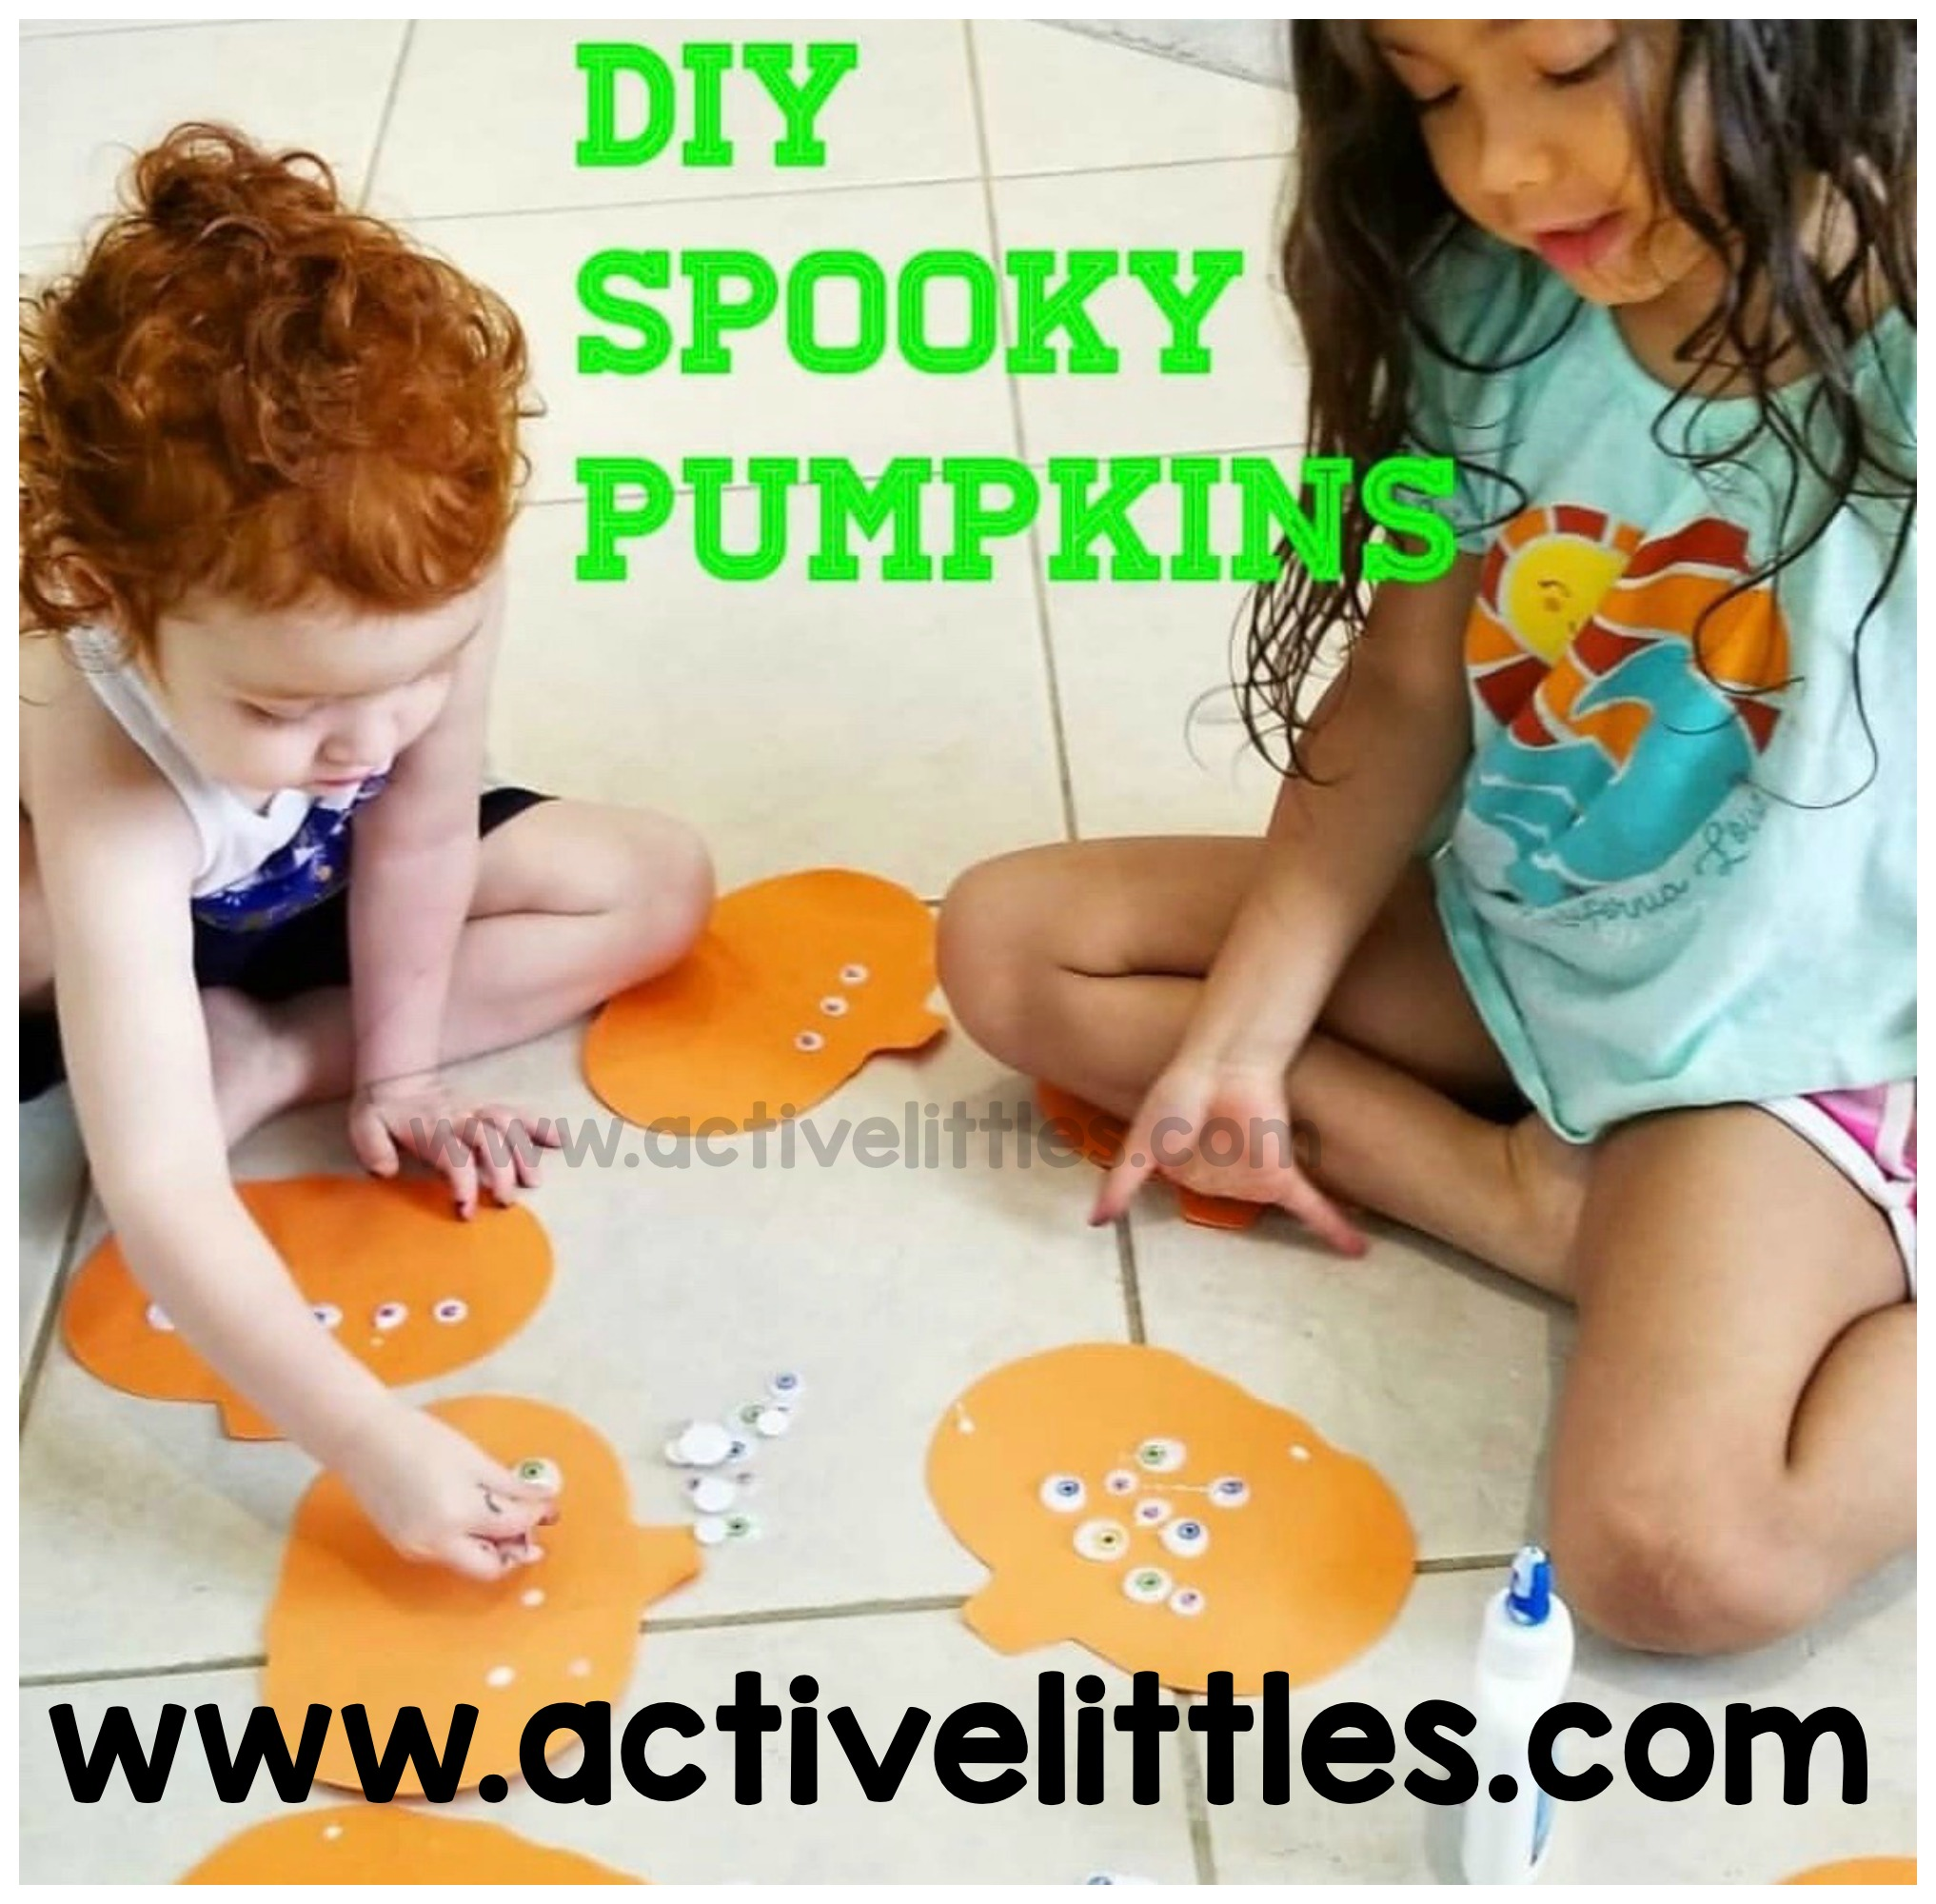 diy spooky pumpkins craft for kids